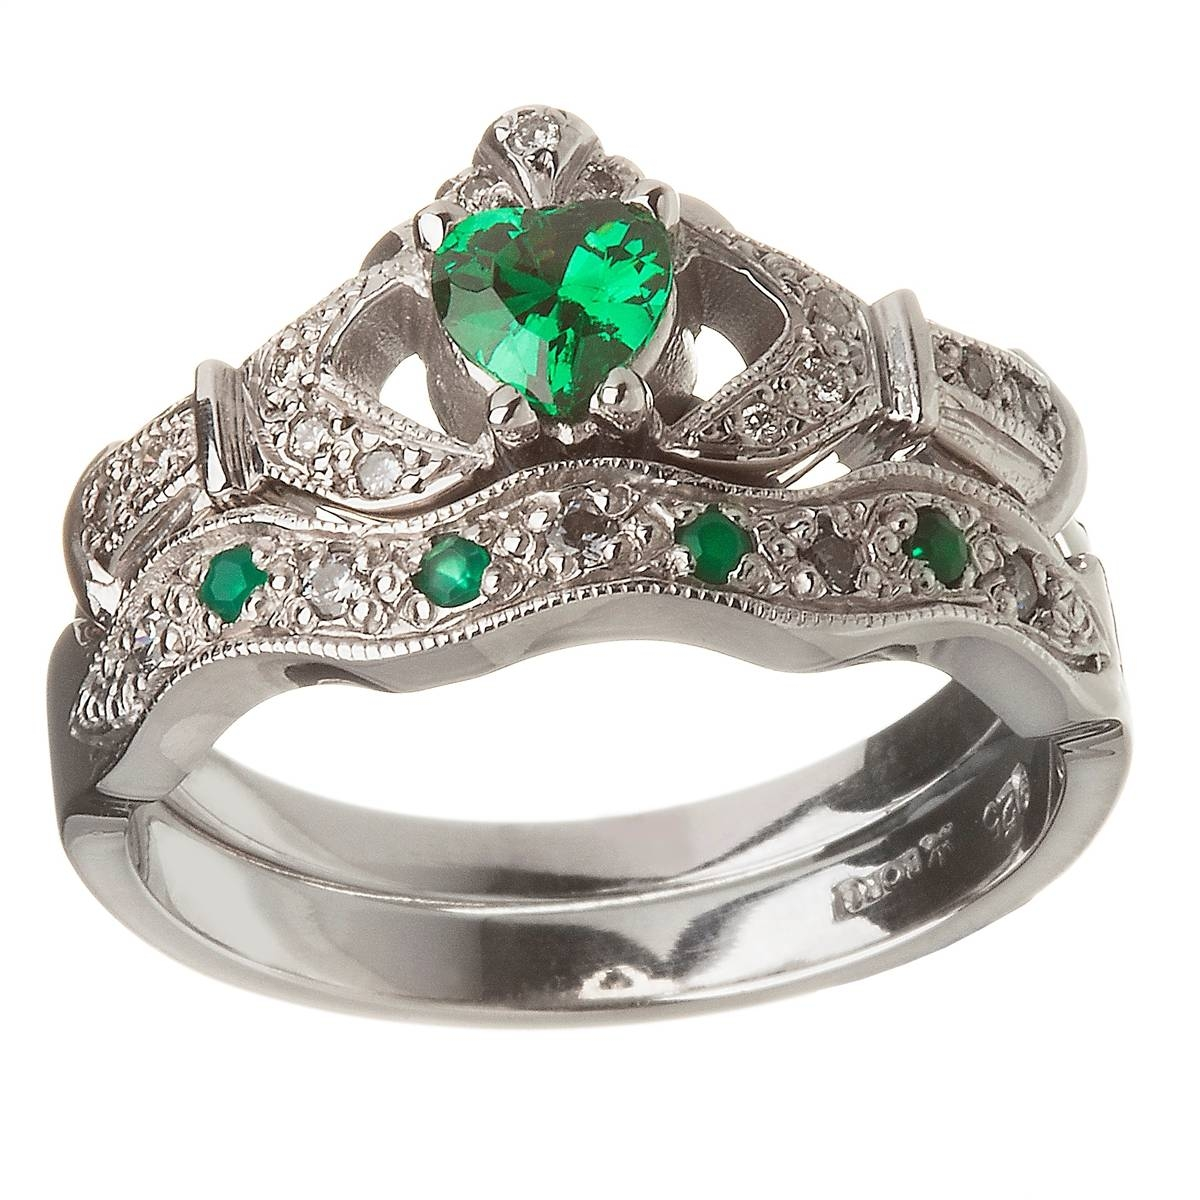 14K White Gold Emerald Set Heart Claddagh Ring & Wedding Ring Set Regarding Emerald Engagement Rings White Gold (View 3 of 15)